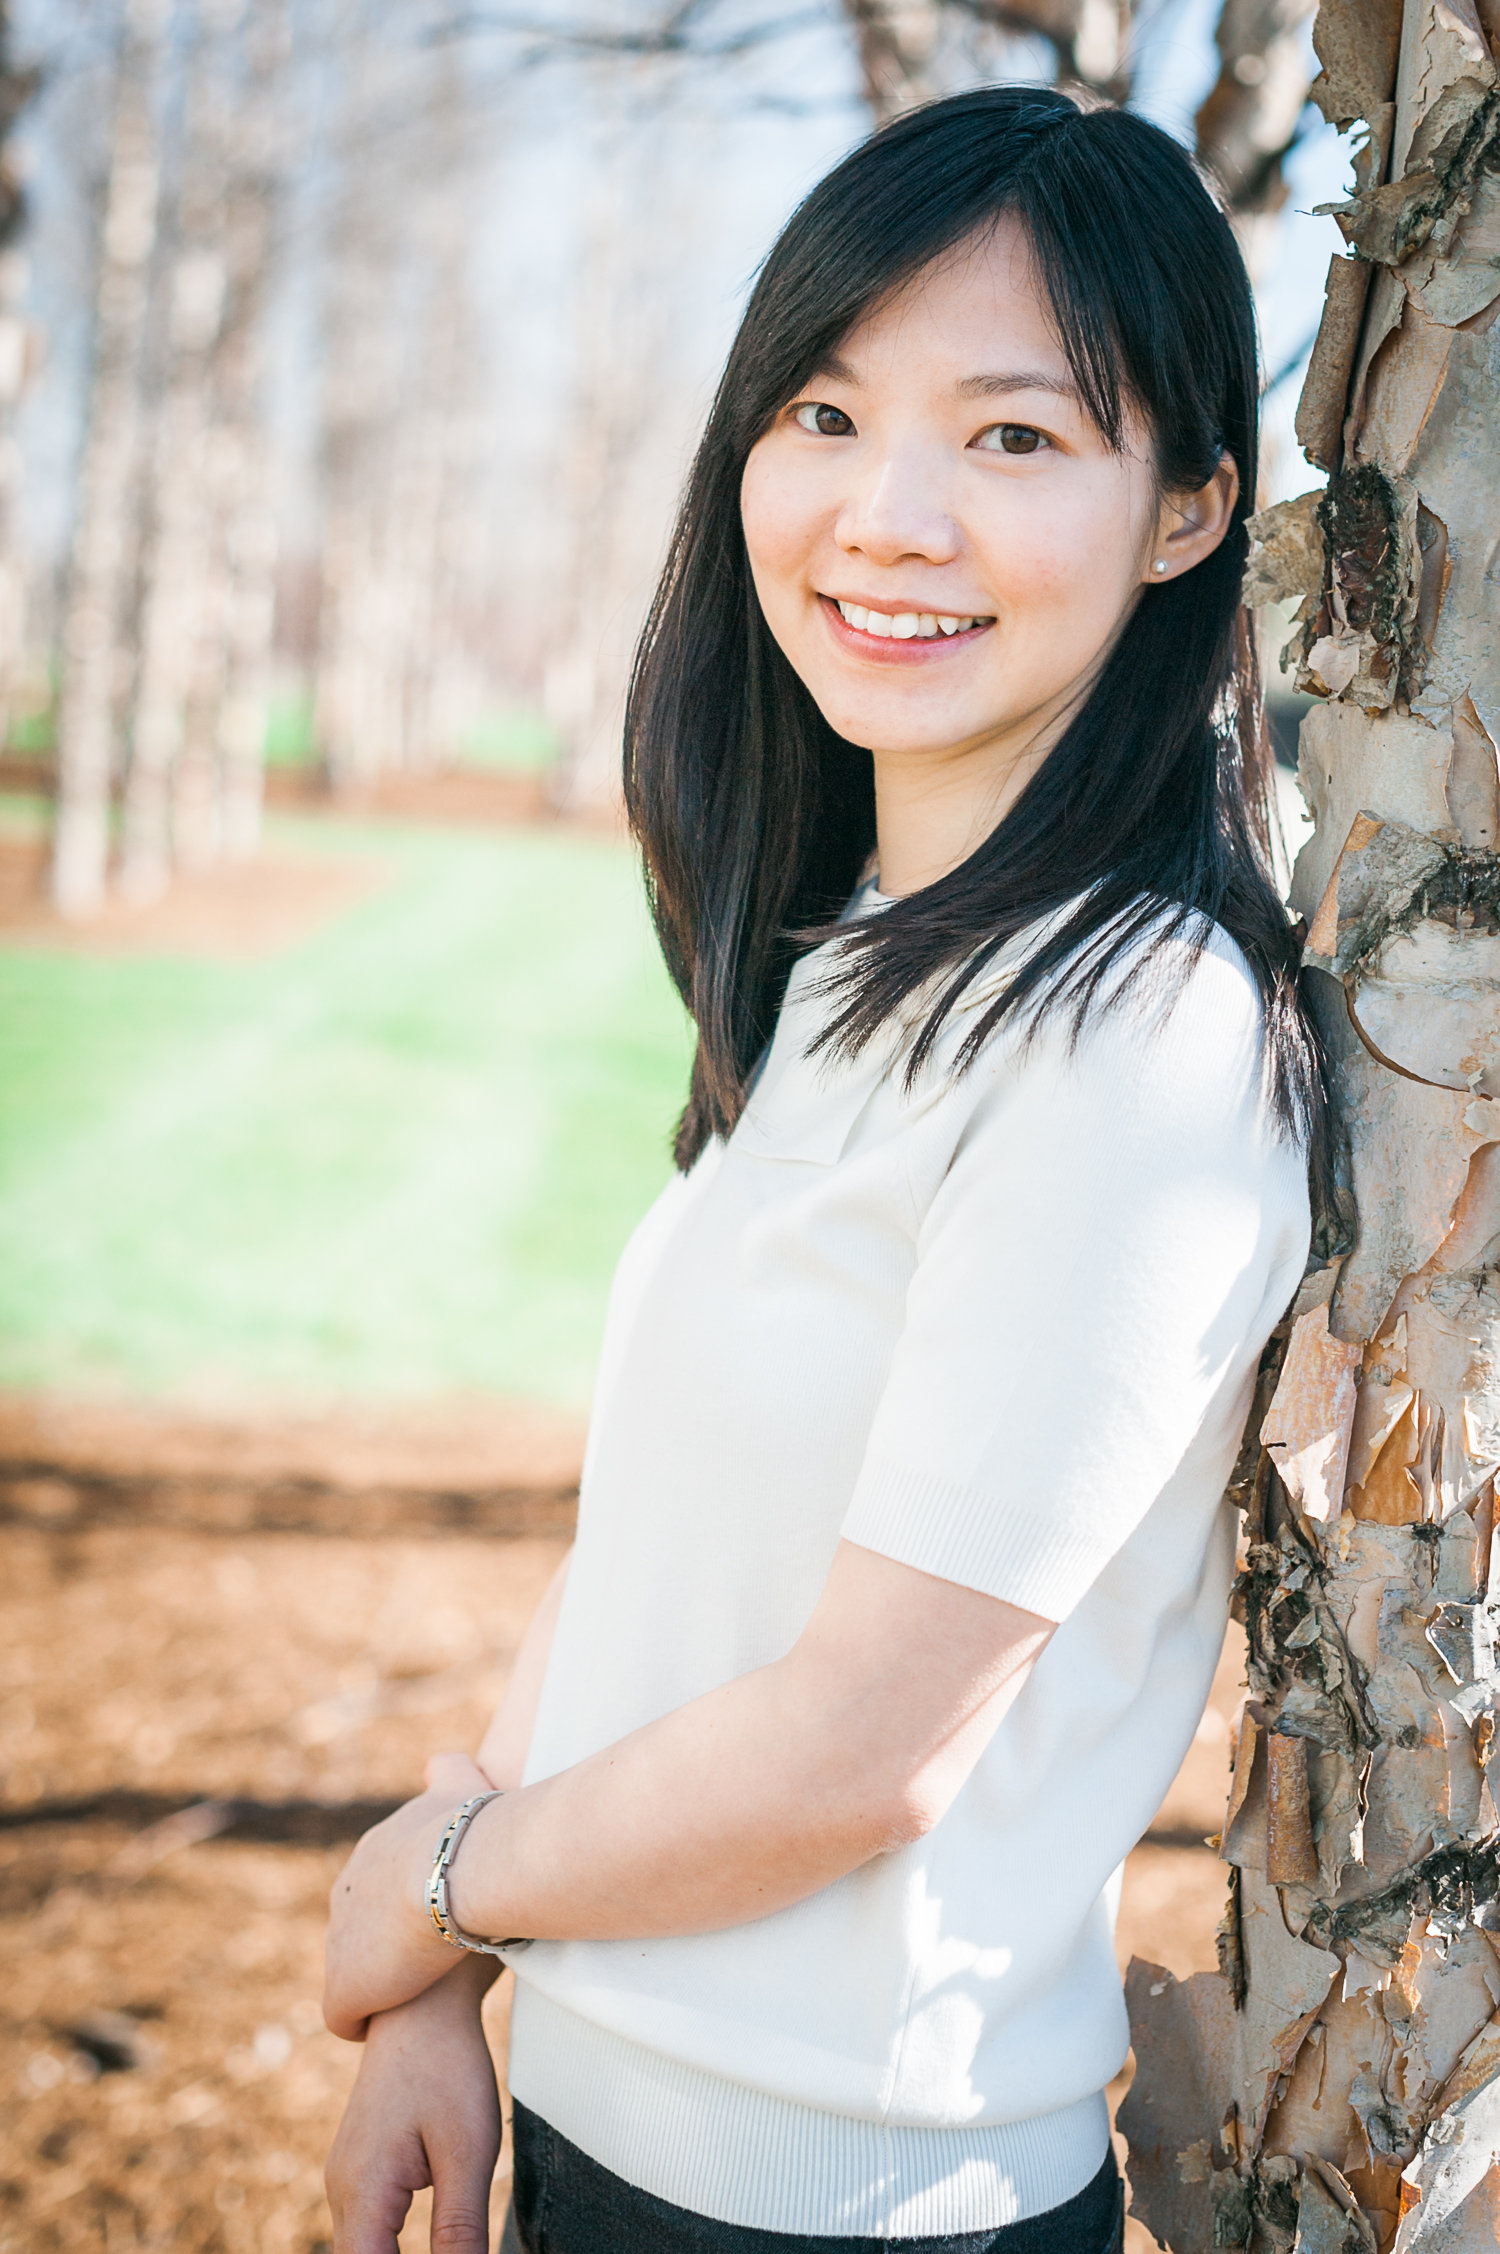 Lu Teng is a Postdoctoral Fellow at University of Antwerp's Center for Philosophical Psychology. In September 2017, she will join NYU Shanghai as an Assistant Professor of Philosophy. Her primary research interests are epistemology and the philosophy of mind.